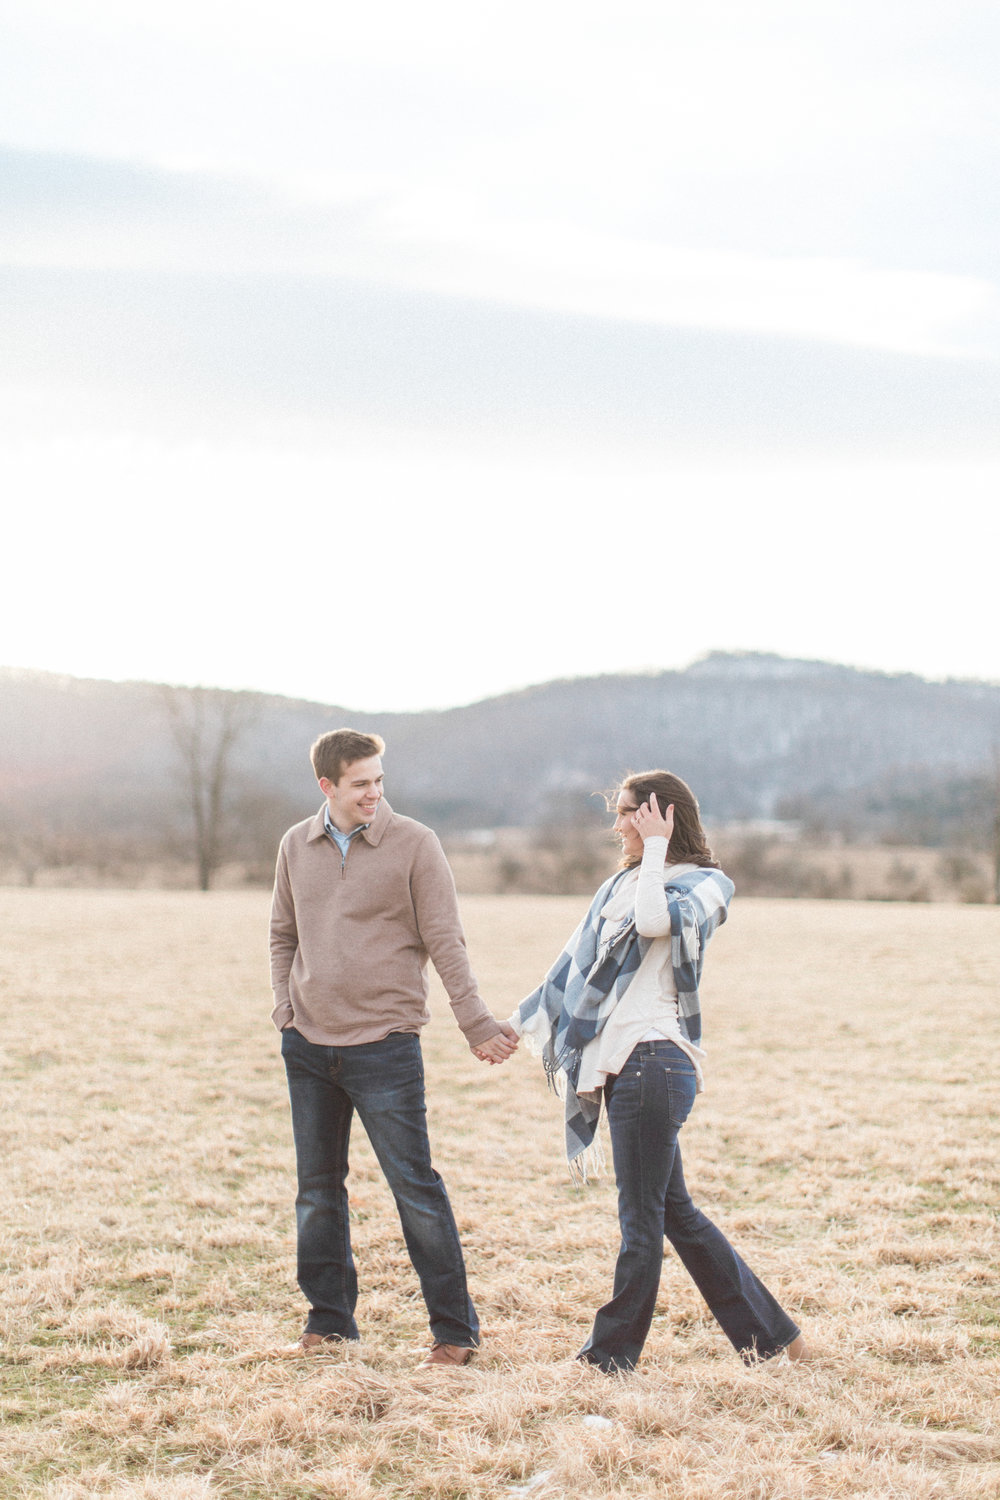 Abigail_Jill_Photography_Maryland_Engagement_Farm_Emily_Justin117.jpg